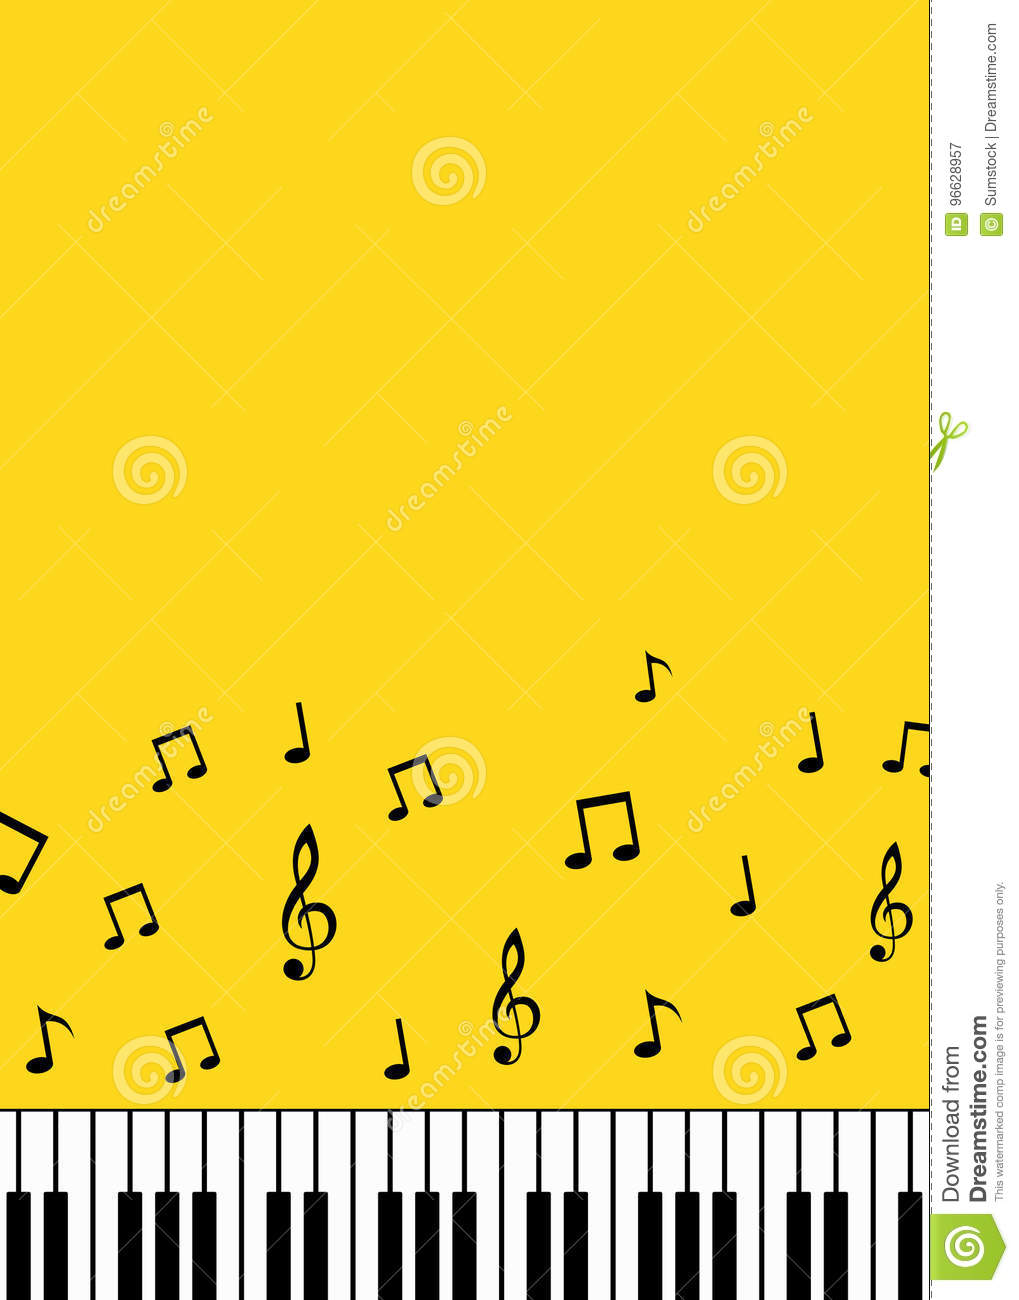 Piano keys and music notes minimalist background